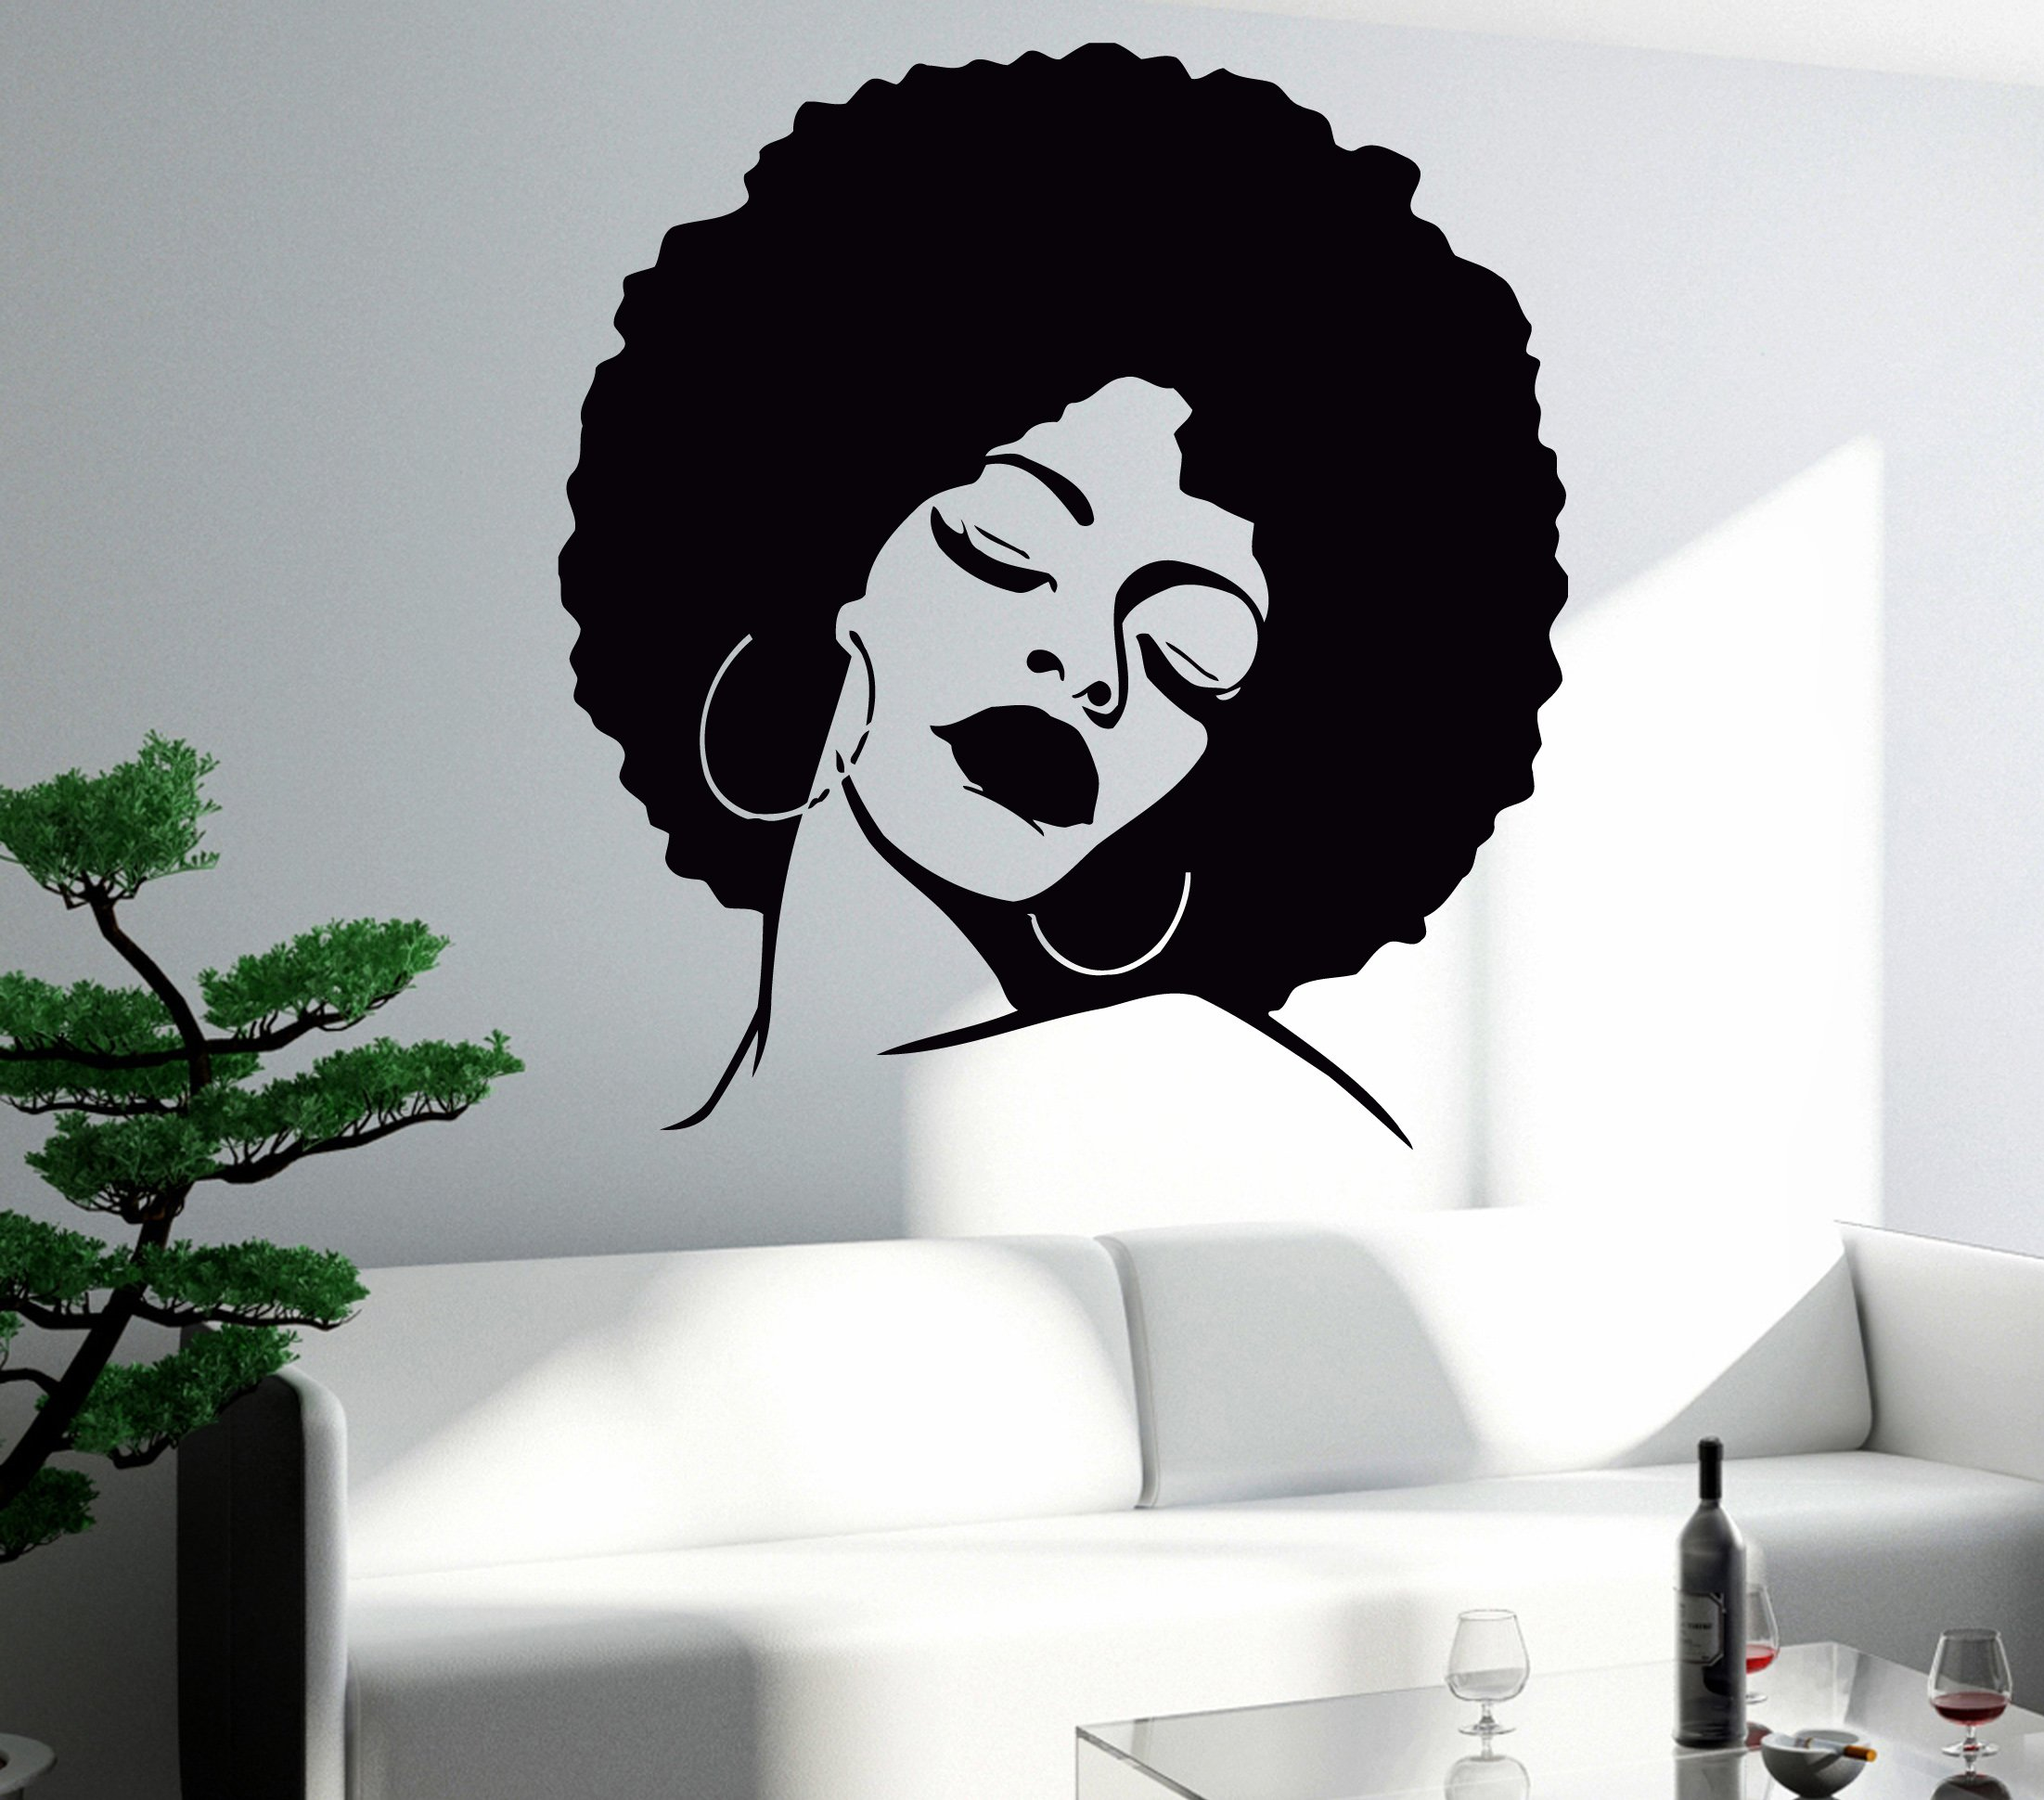 Wall Sticker Vinyl Decal Black Lady Face Hot Sexy Hair Salon Mural (z596) (S 11 in X 13.2 in) by WallStickers4ever